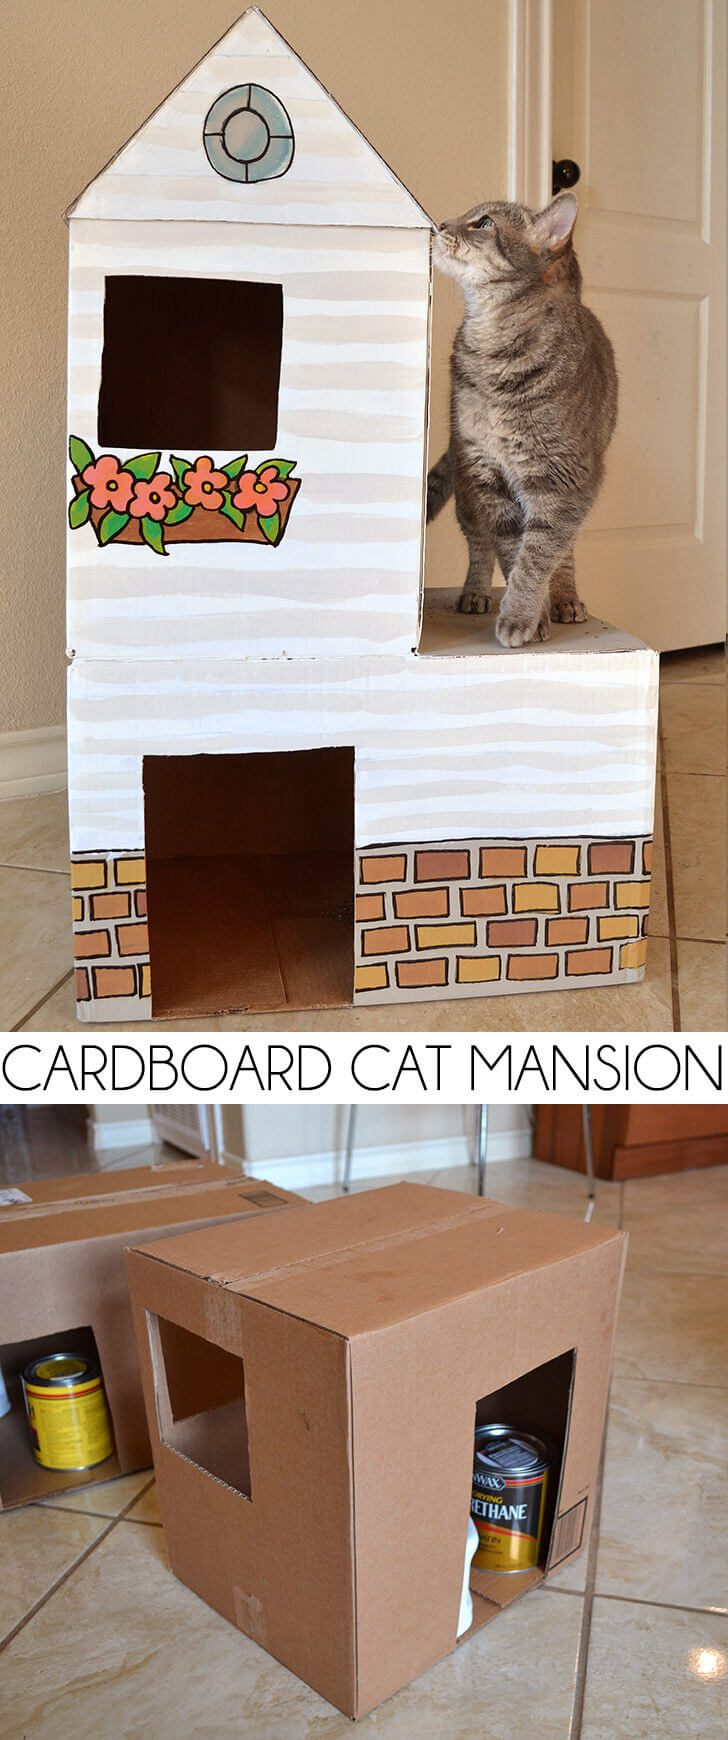 Cardboard Cat Mansion, or a Use for Amazon Prime Boxes